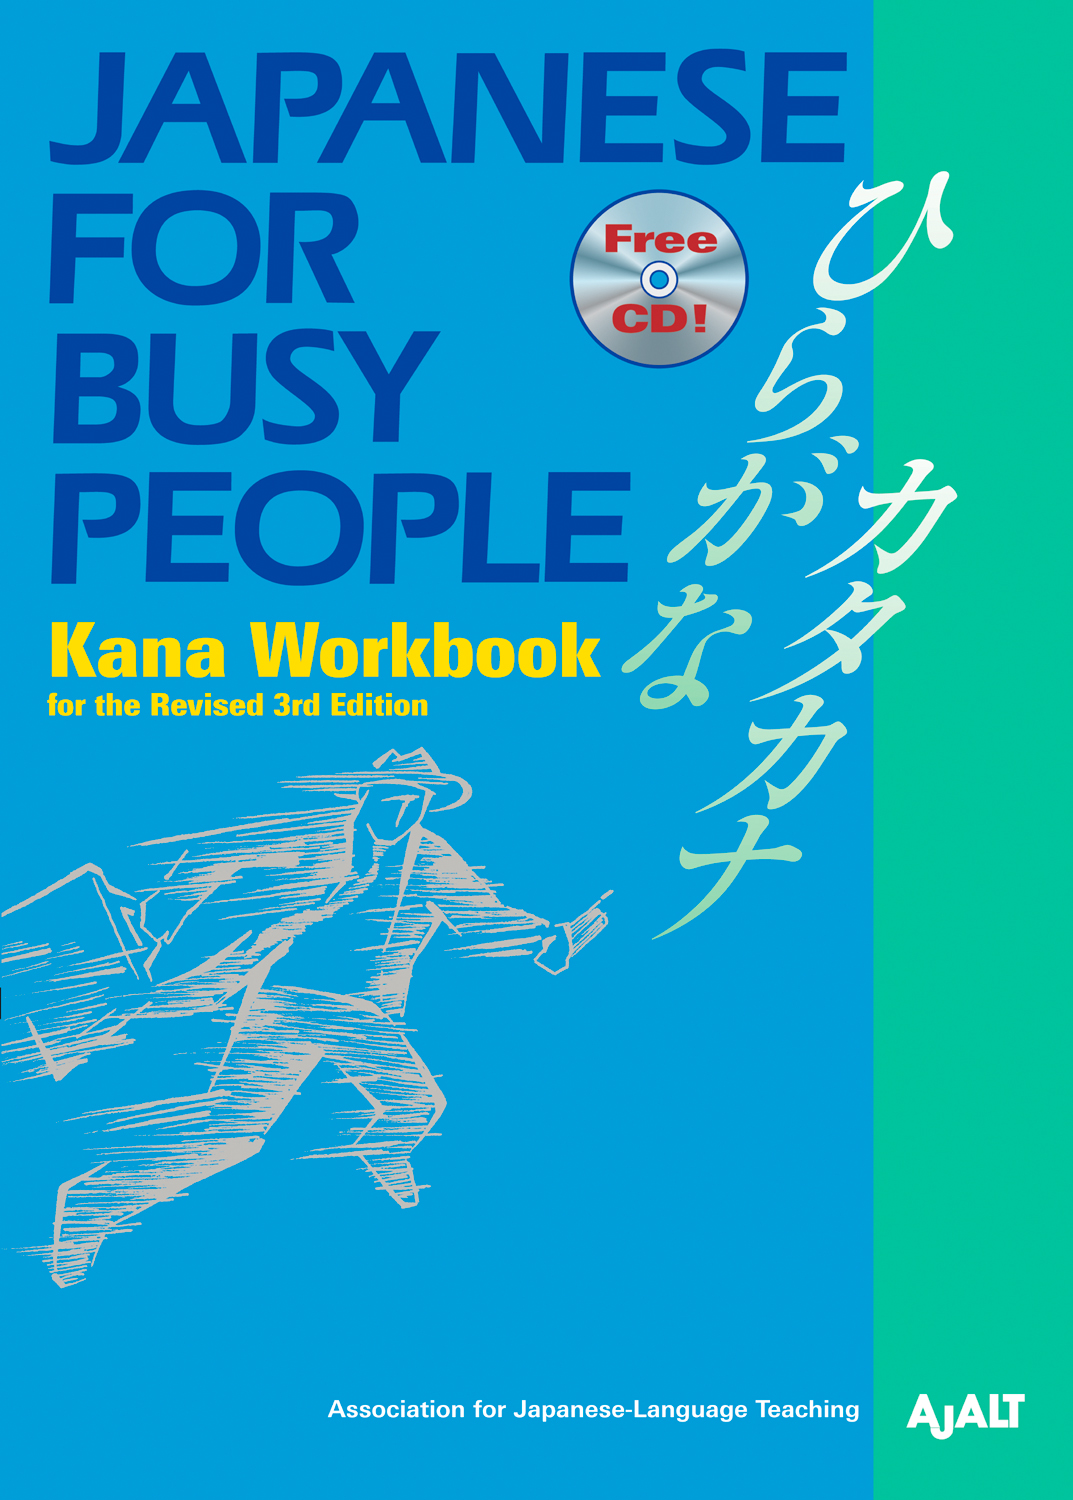 Cover of Japanese for Busy People Kana Workbook for the Revised 3rd Edition.